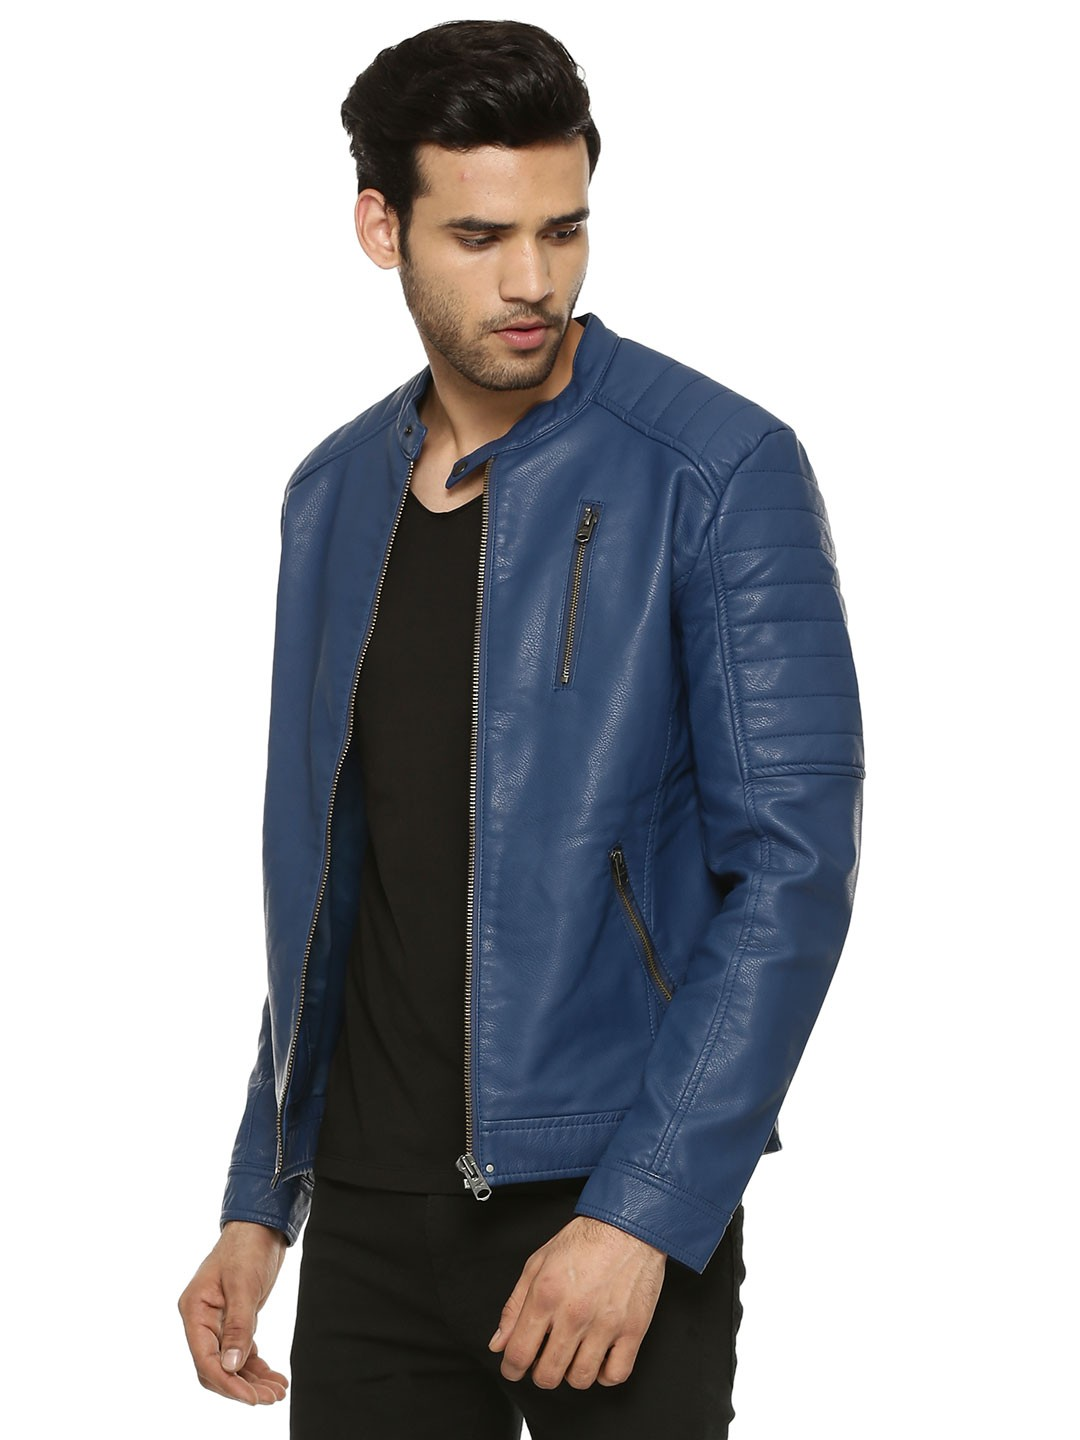 buy jack jones biker jacket with sleeve quilting for men men 39 s blue jackets online in india. Black Bedroom Furniture Sets. Home Design Ideas